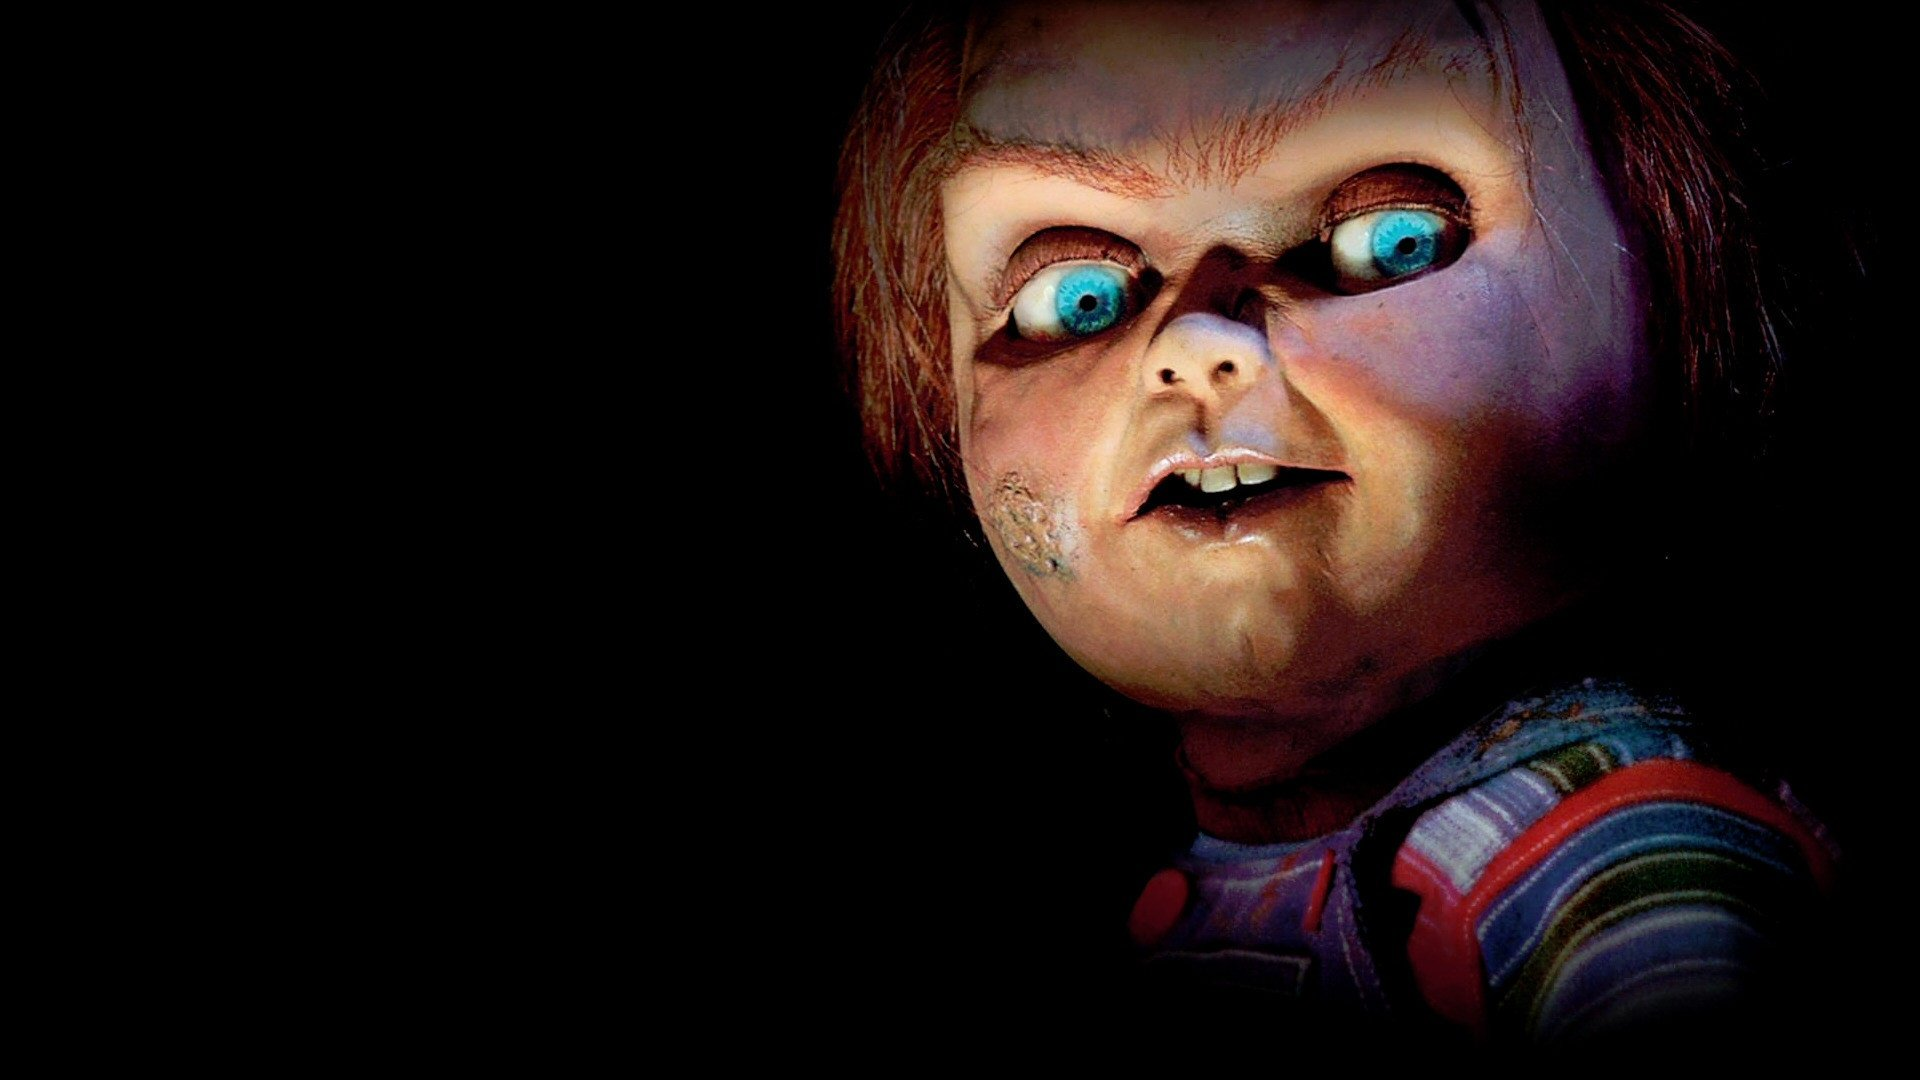 chucky My 1 yr old daughter delilah perez is dressed as chucky the posses doll hehehe my husband and i were just talking about what should our daughter b for her 1st halloween n he said what about chucky n i thought it was great because.